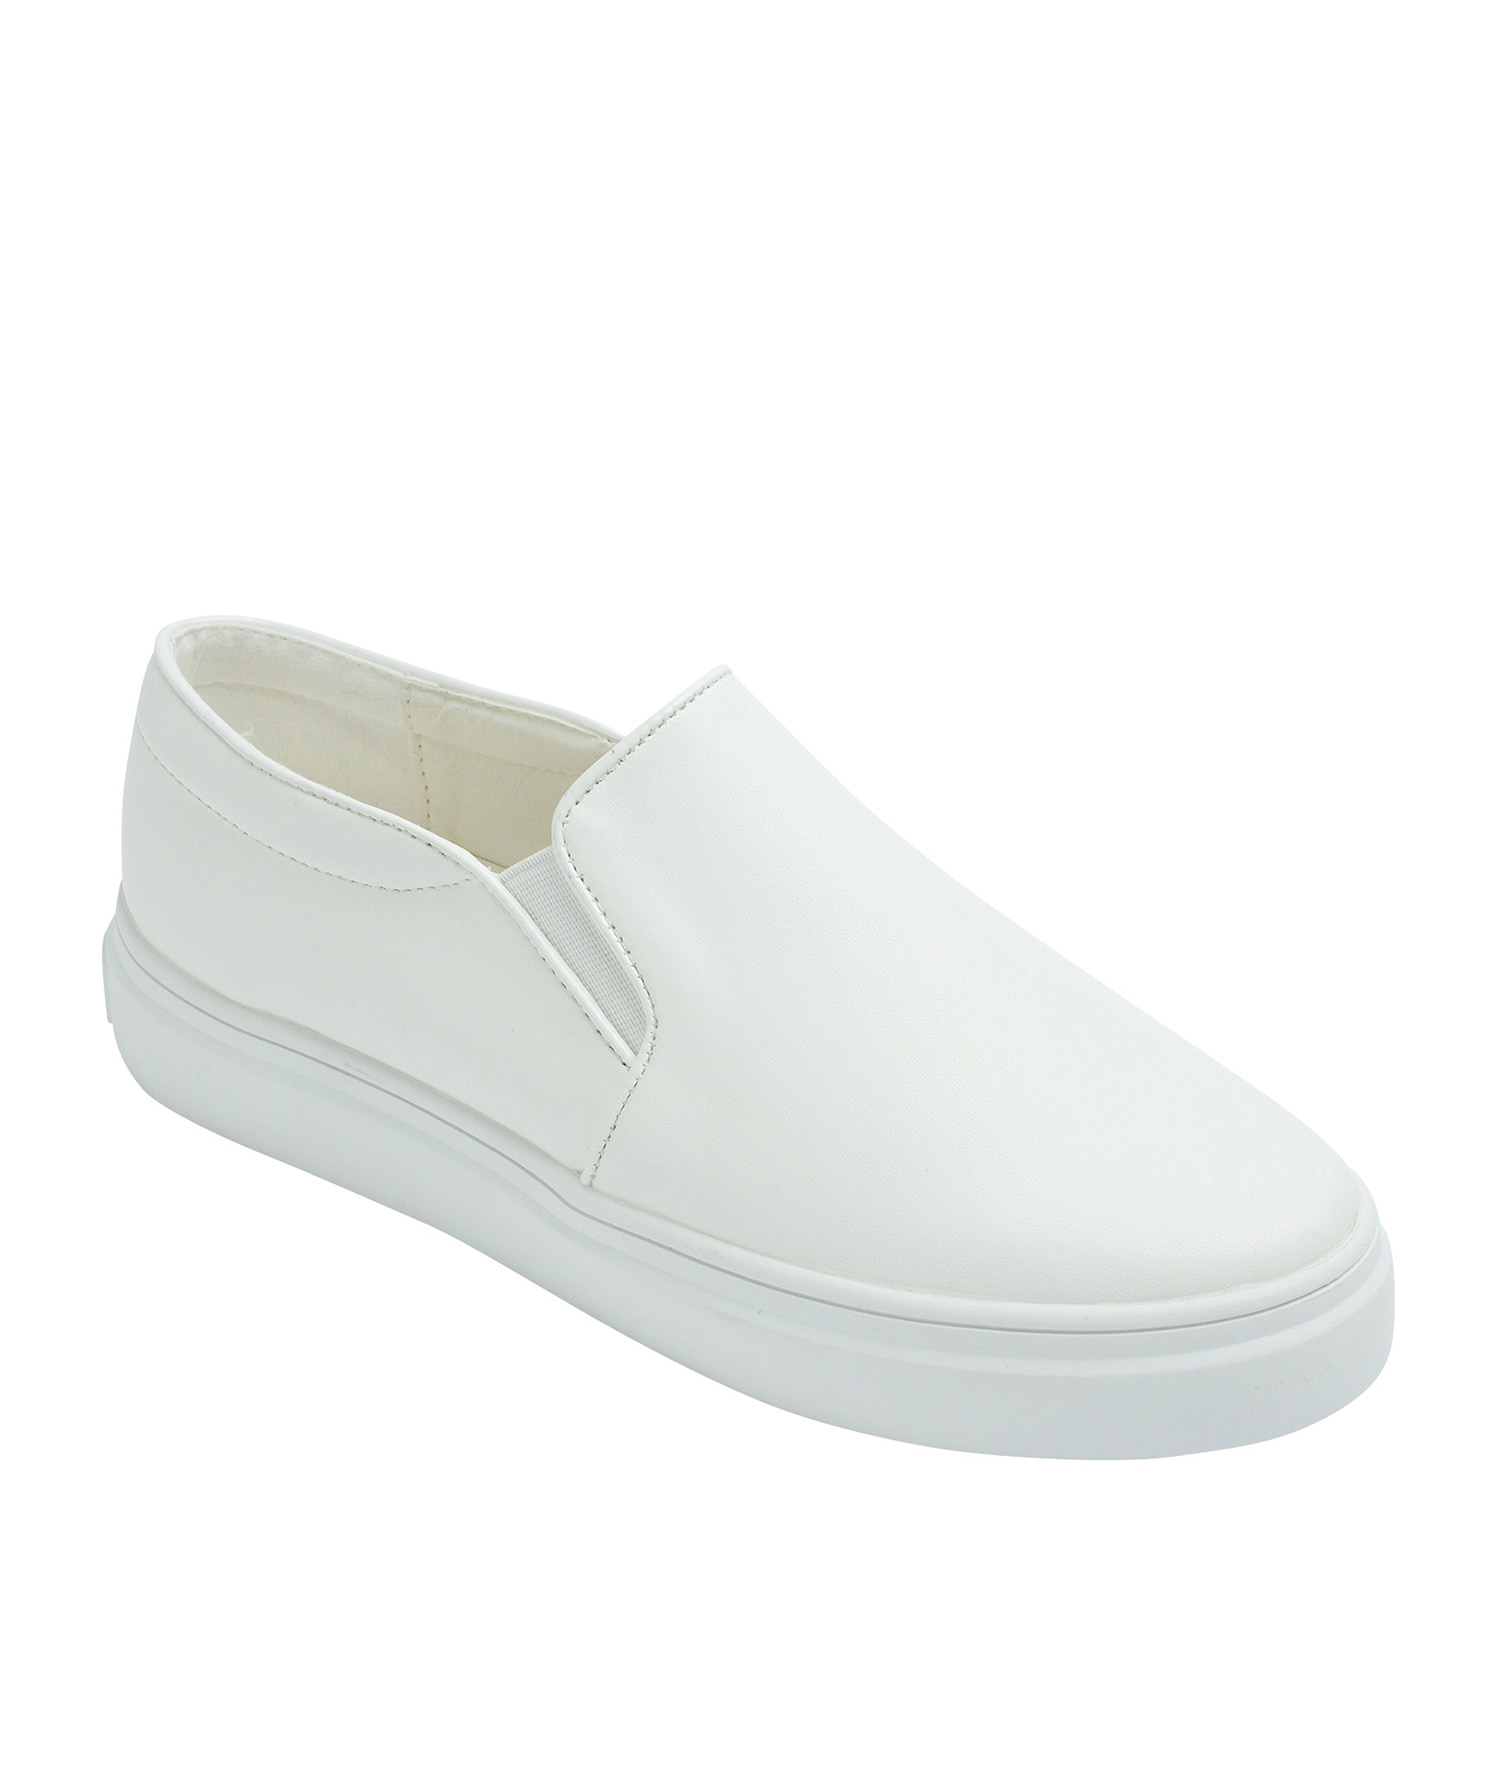 Sneakers Classic Faux On Leather Slip derxBoQWC